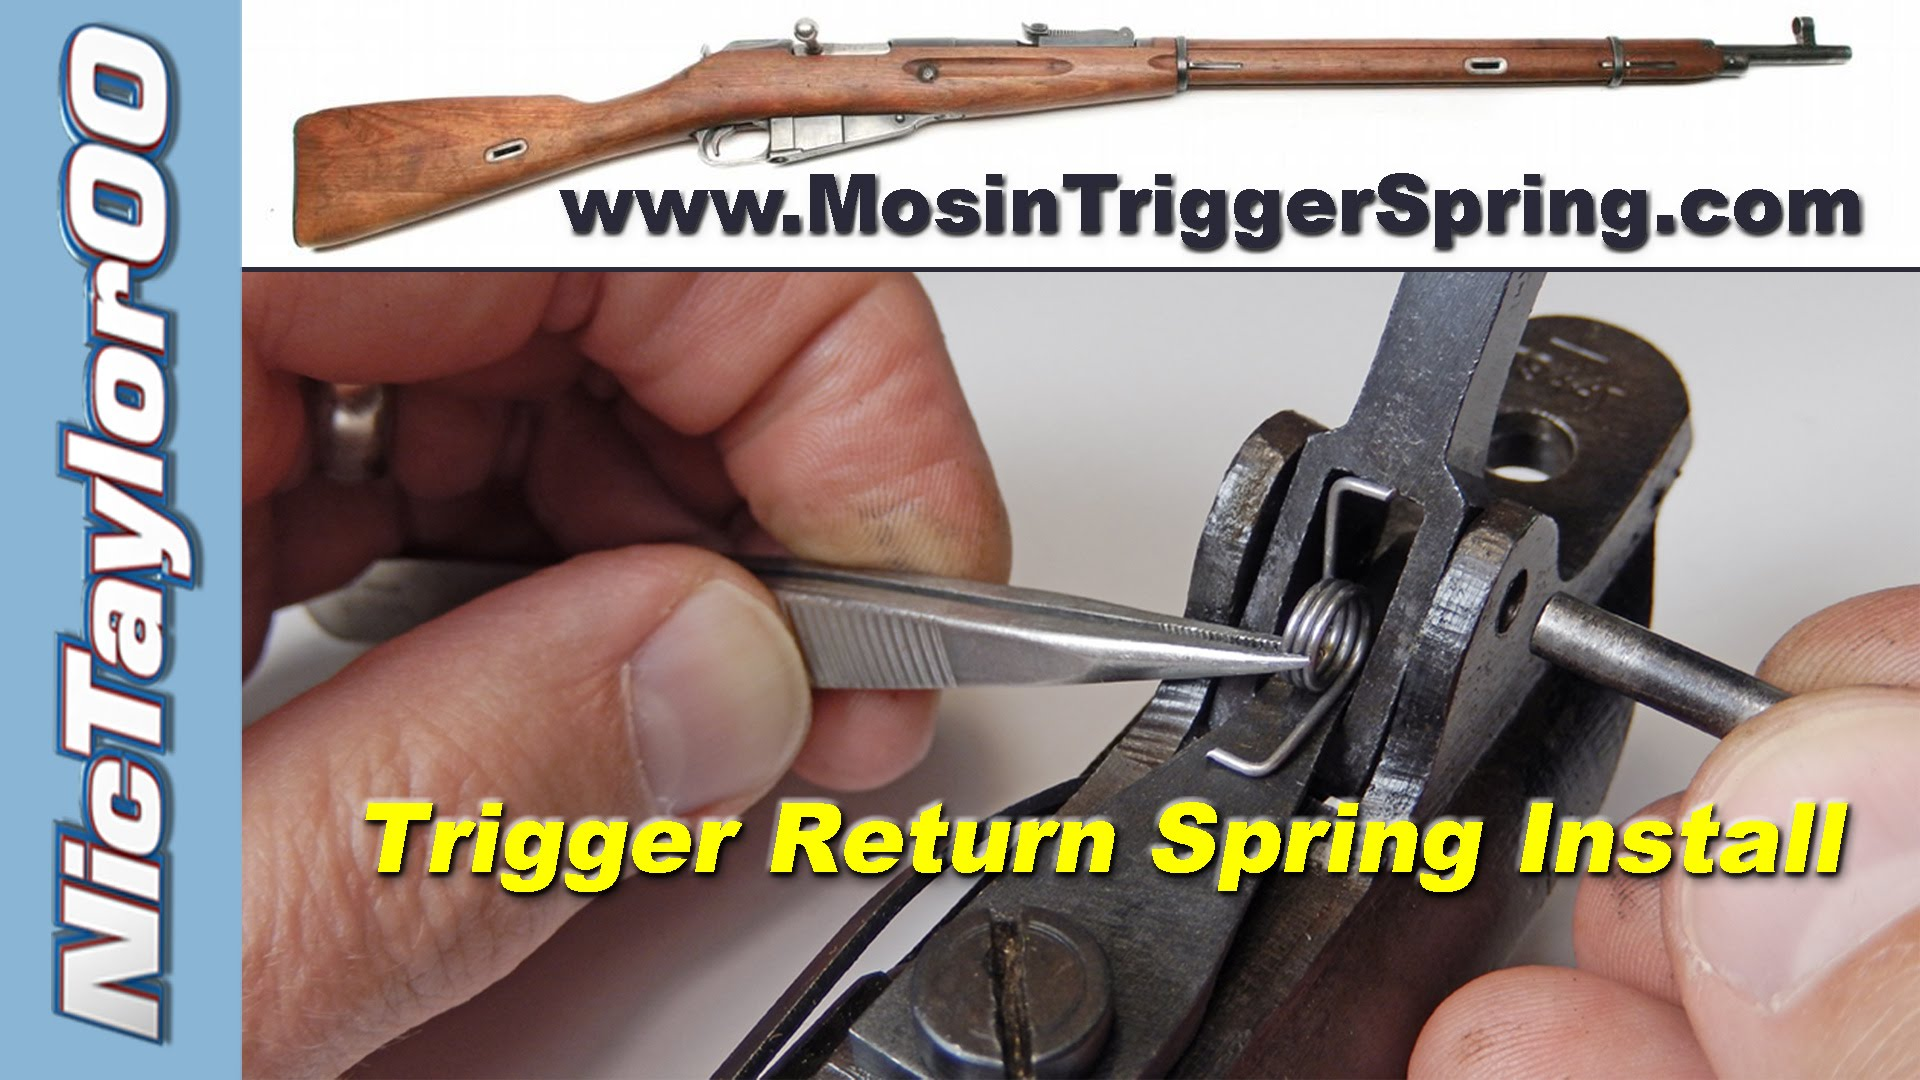 Mosin Nagant Trigger Return Spring Installation -  Simple Upgrade